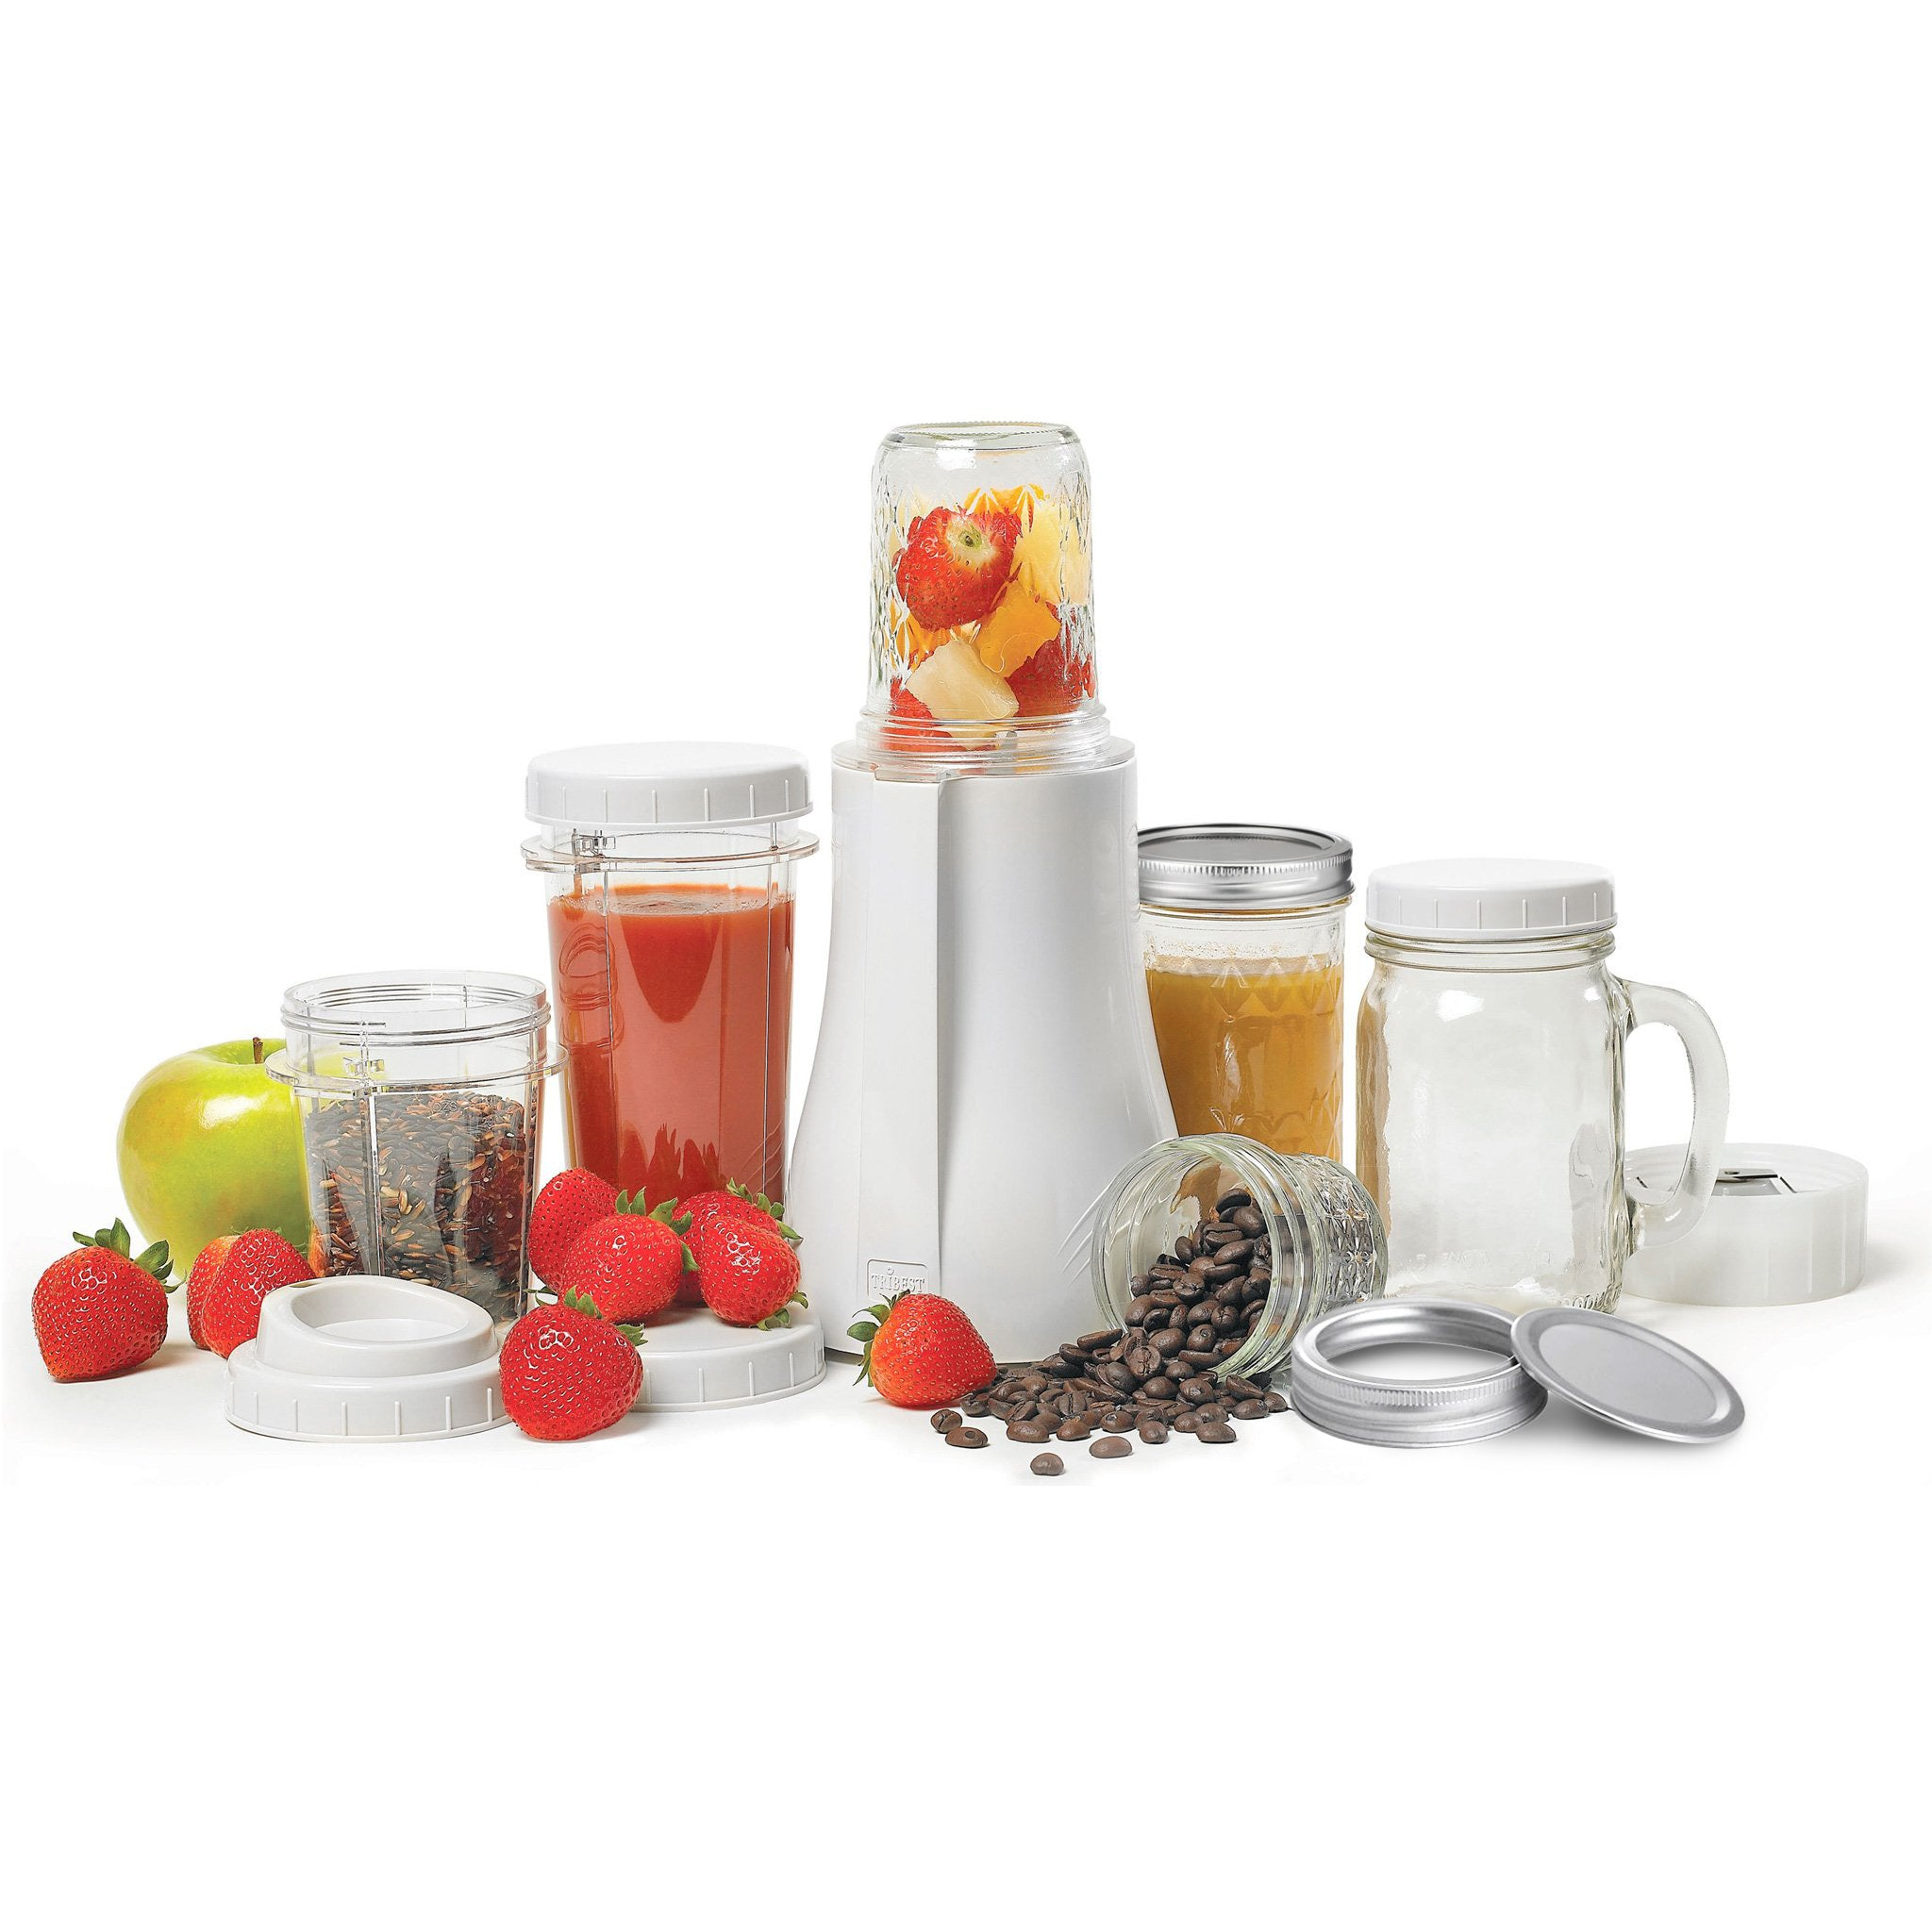 Personal Blender Original Single-Serving Blender (16-Piece Mason Jar Set) PB-350-A - Tribest